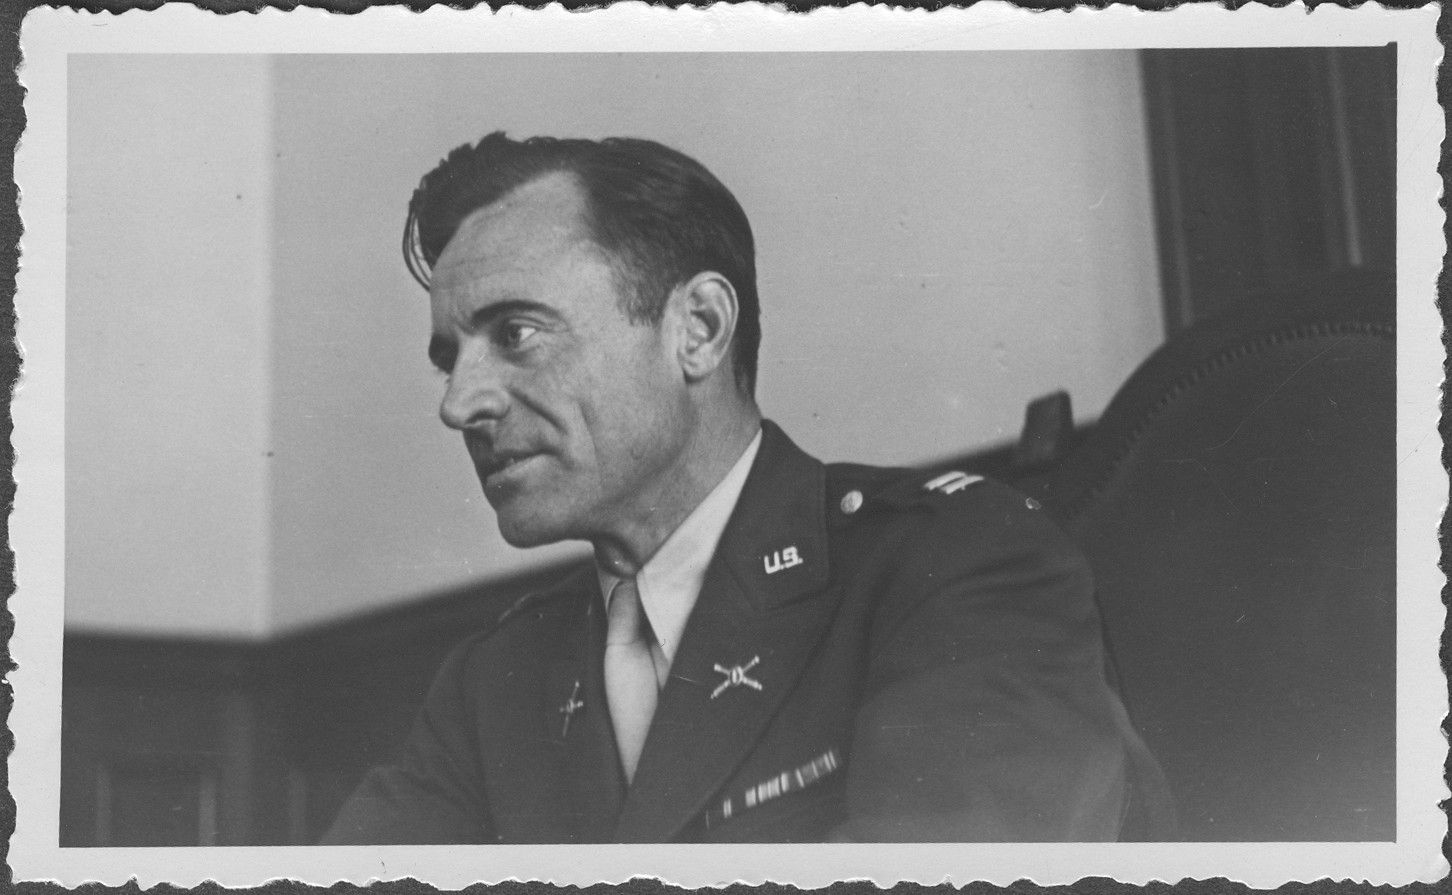 Portrait of Captain Turbidy, one of the commissioners hearing evidence at the IMT Nuremberg commission hearings investigating indicted Nazi organizations.